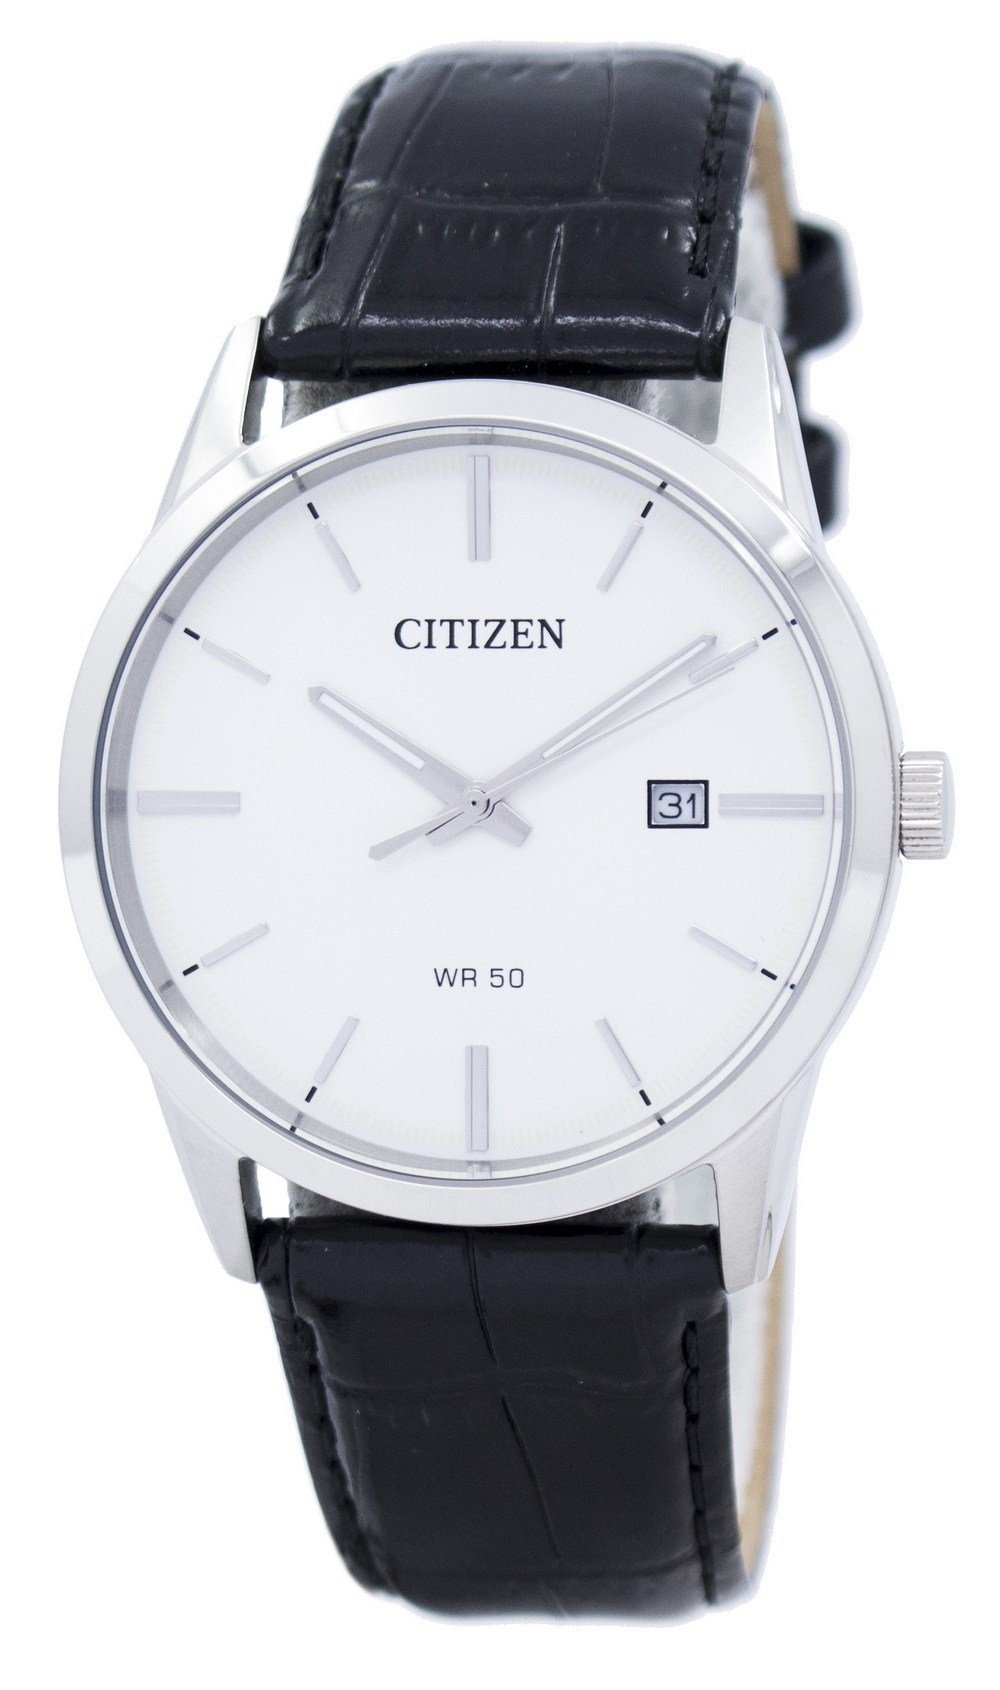 Citizen Quartz BI5000-01A Men's Watch